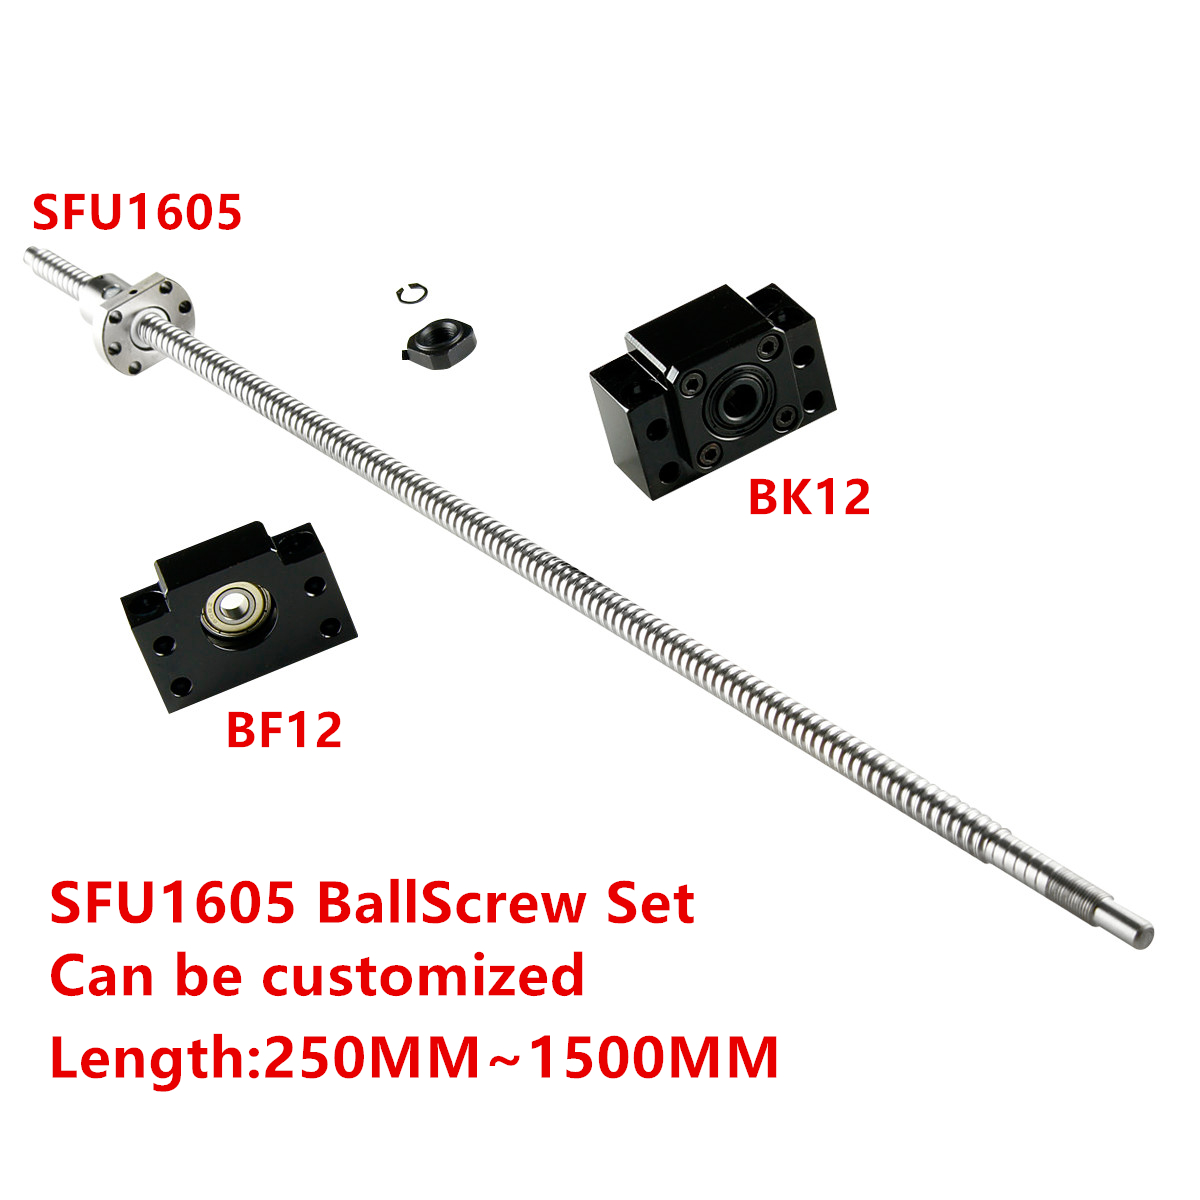 Ball Screw SFU1605-250 300 350 400 450 500 550 600 650 700 750 900 1000 End Machined With BK12/BF12 End Support Bearing Mounts